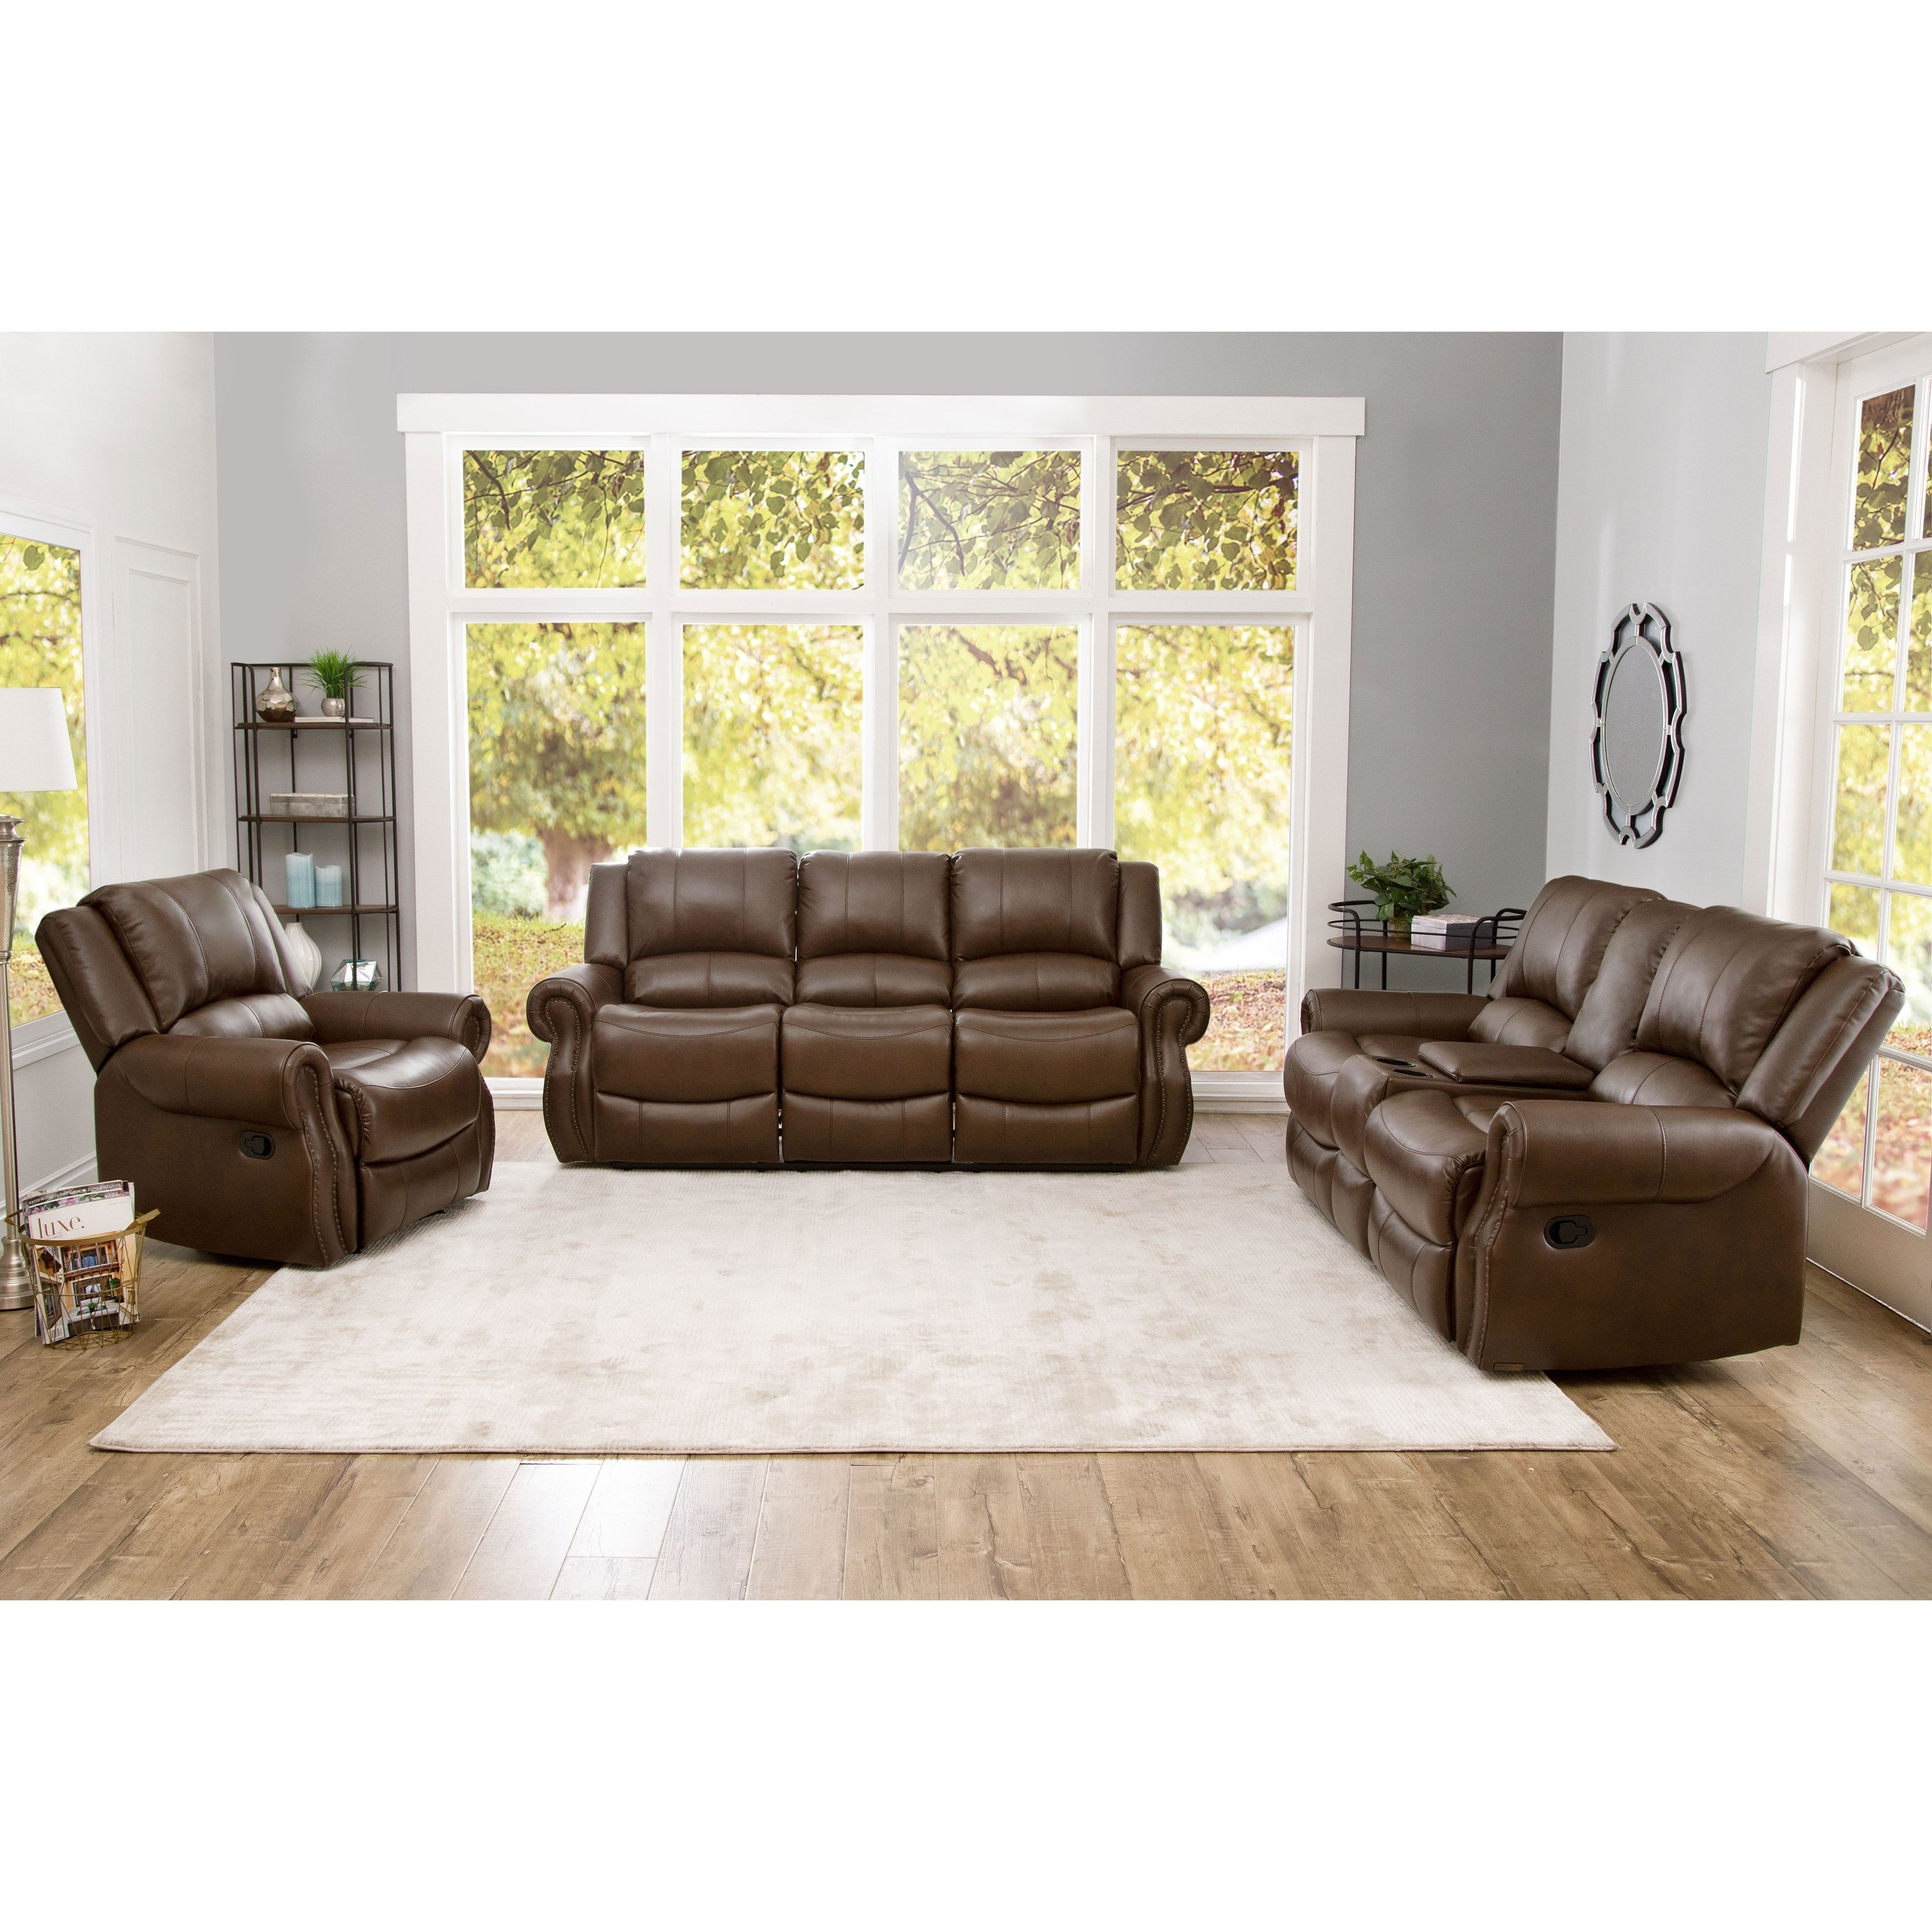 Shop Abson Calabasas Mesa Brown Leather 3 Piece Reclining Living within 11 Some of the Coolest Ideas How to Craft Living Room Sets For Cheap